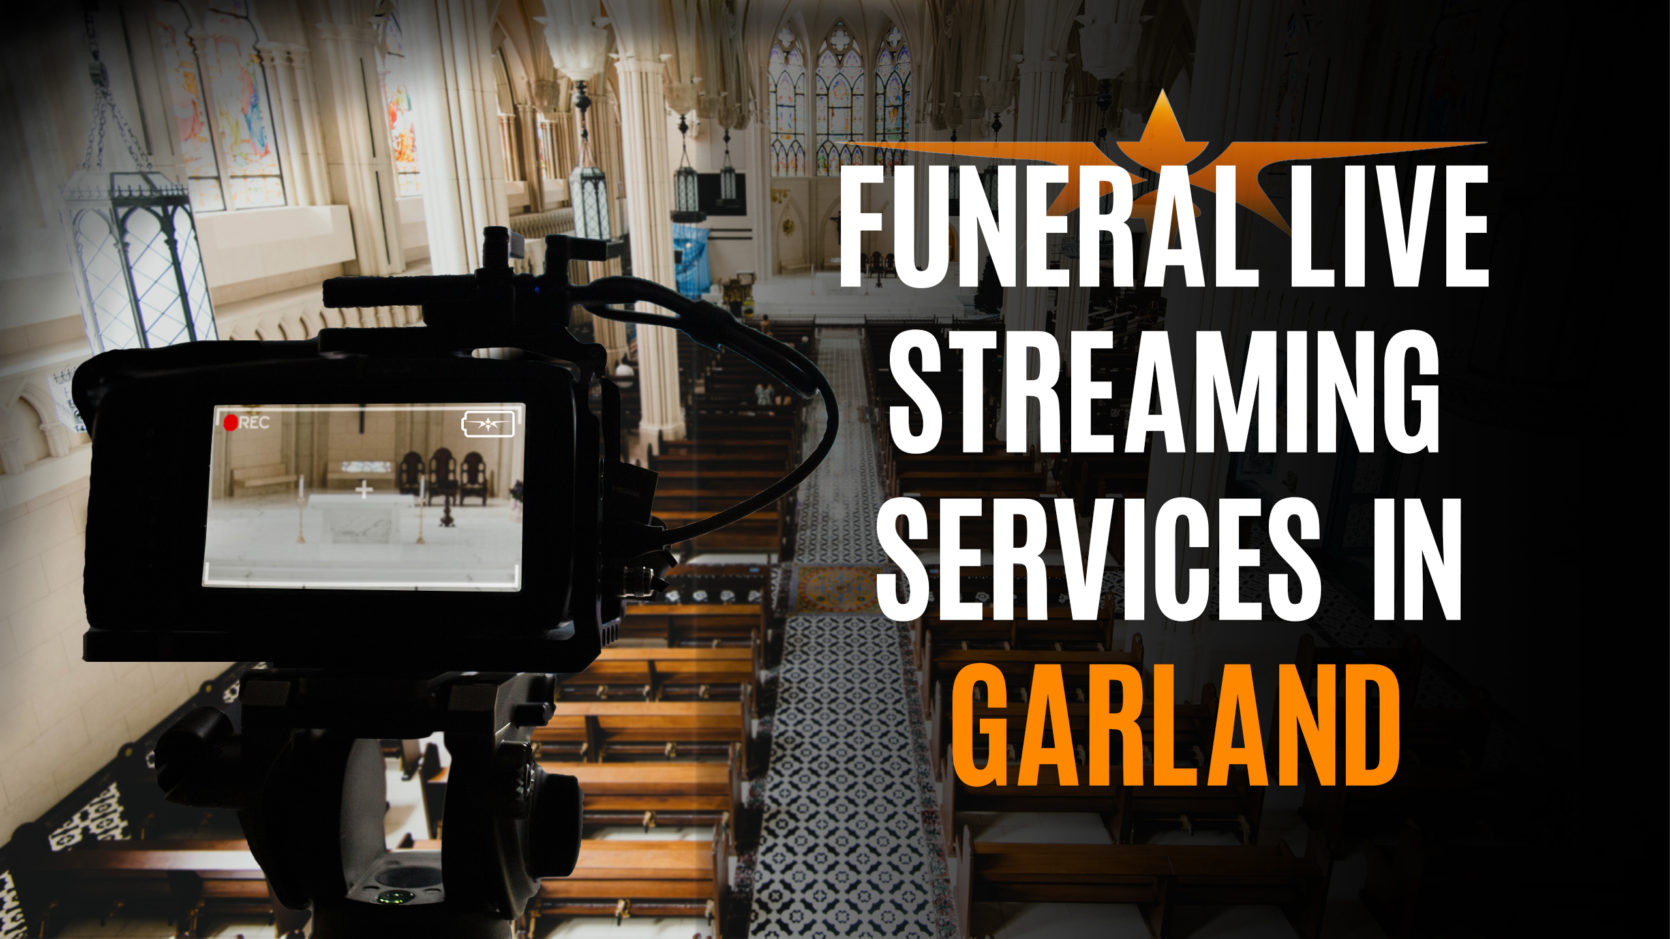 Funeral Live Streaming Services in Garland